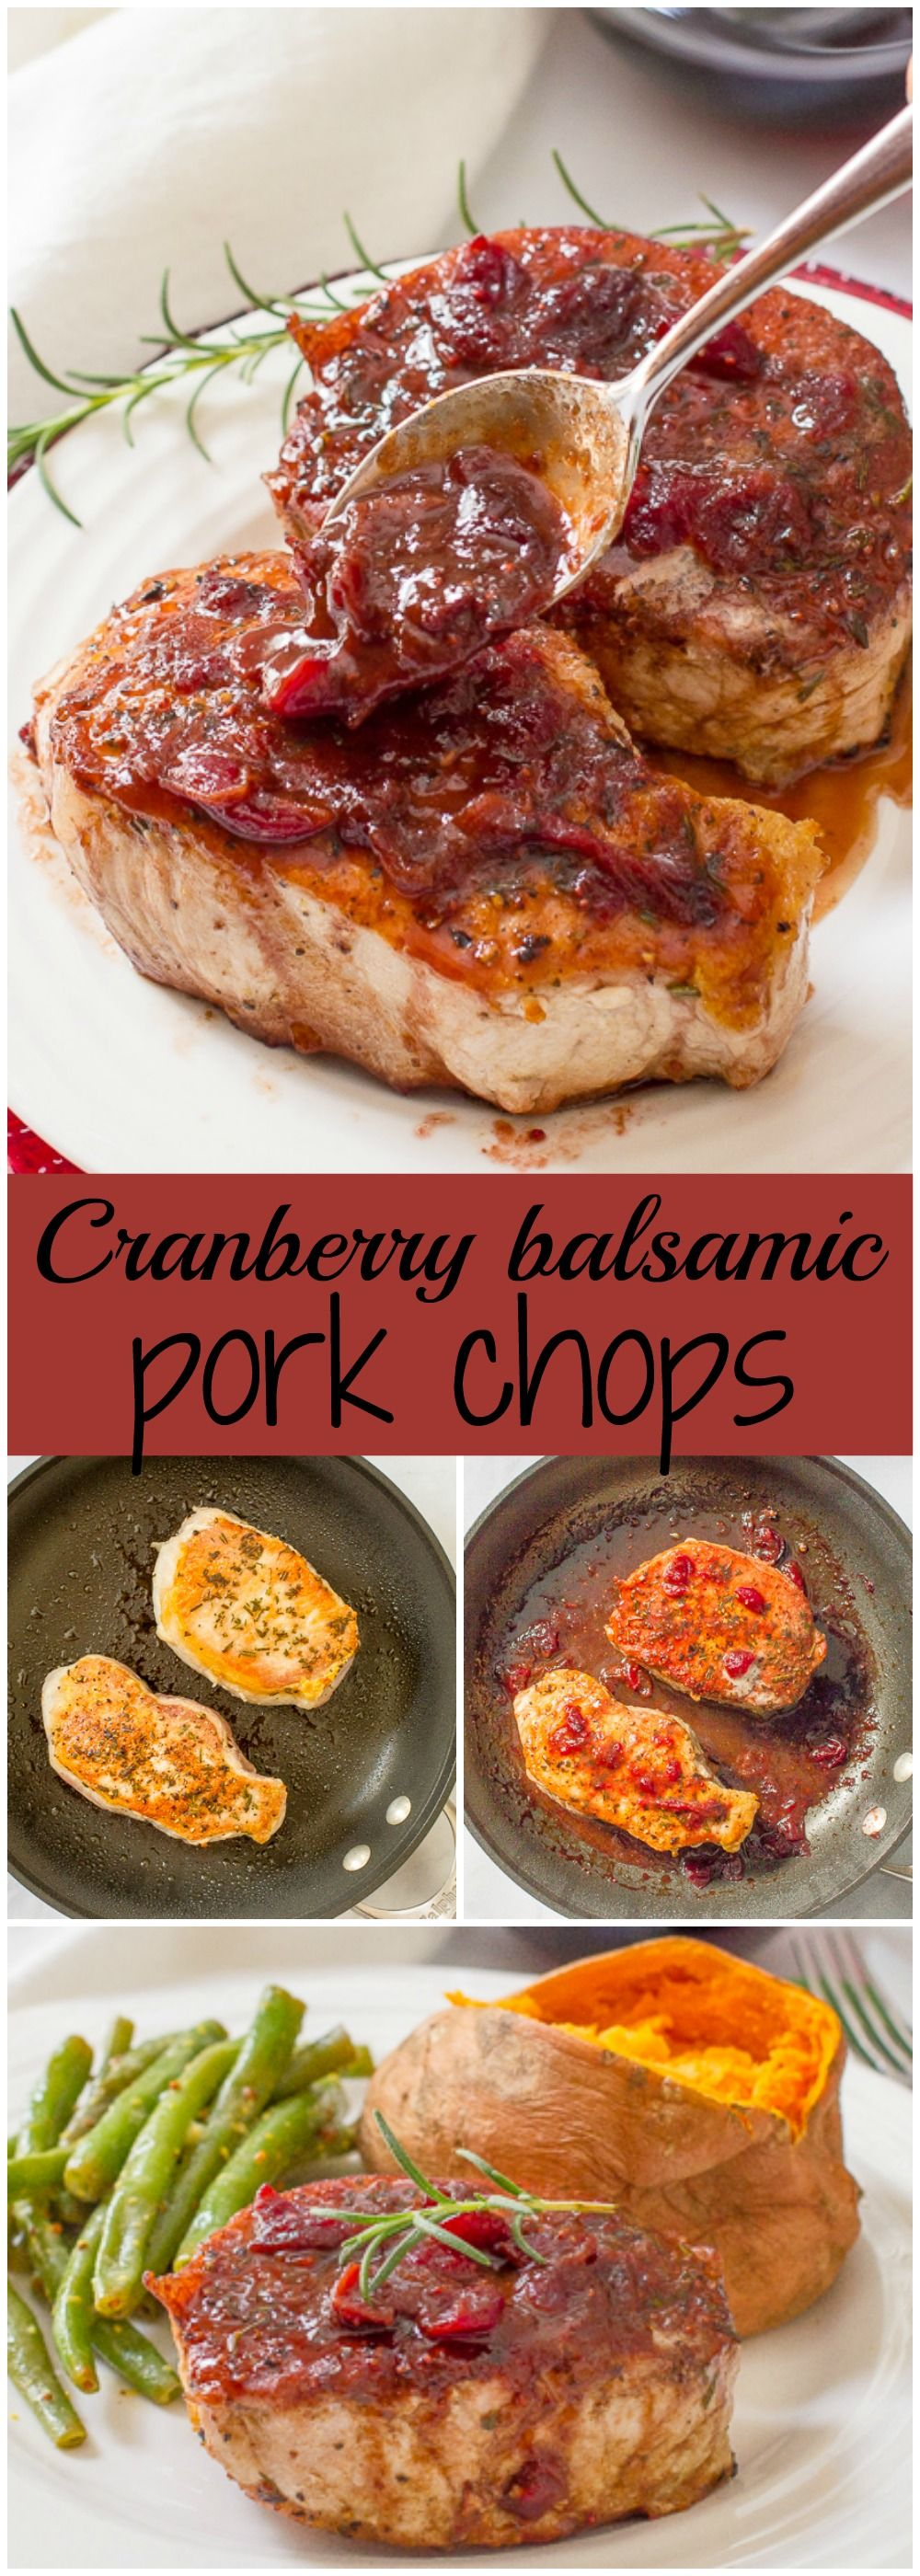 Cranberry balsamic pork chops are a quick and easy weeknight or date night dinner that has serious flavor with simple ingredients | www.familyfoodonthetable.com